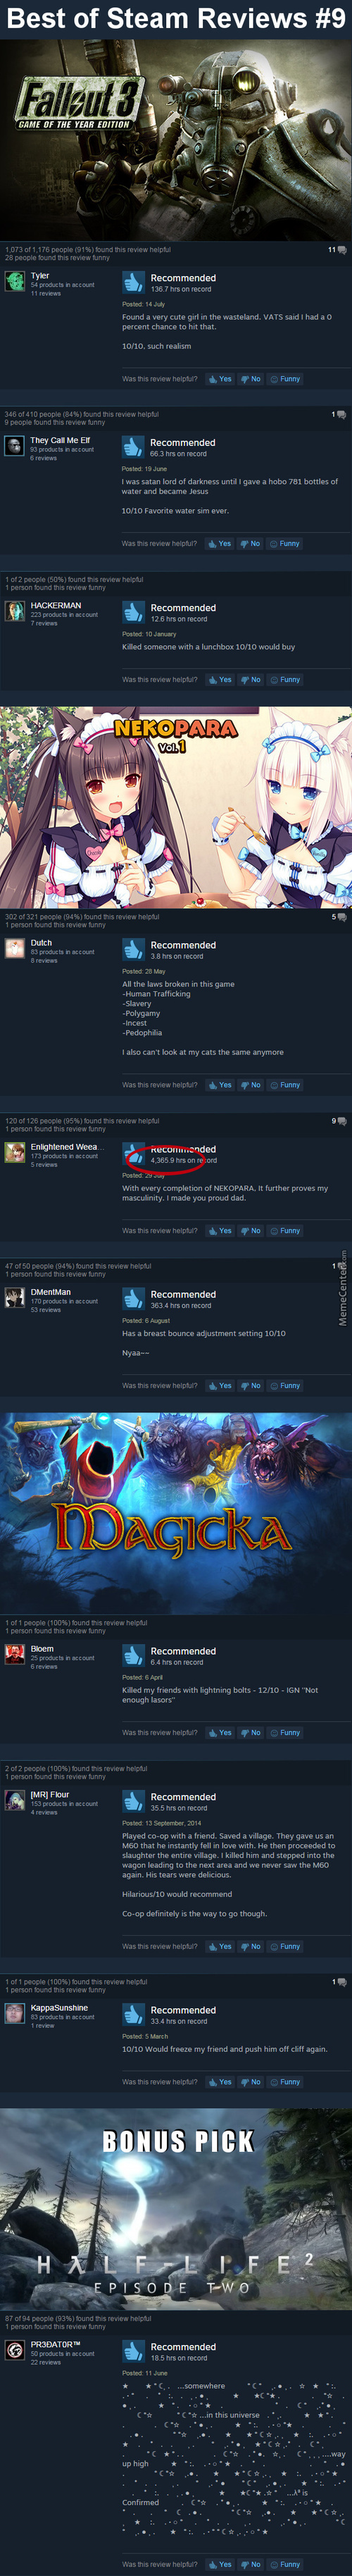 Best Steam Reviews #9 - 3 Reviews Per Game = Hl3 Confirmed